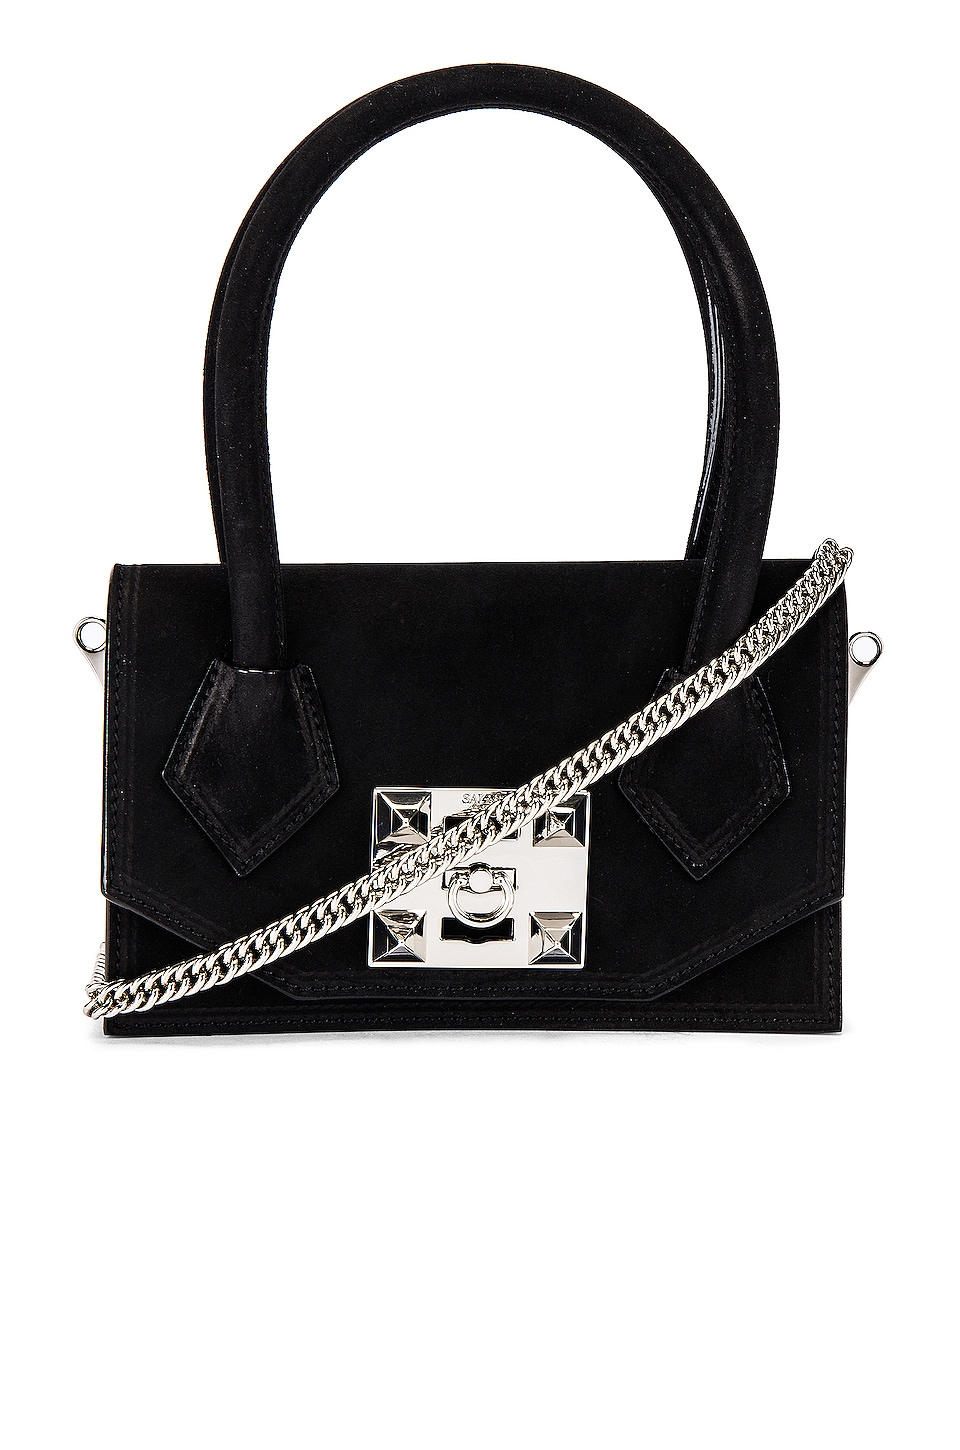 SALAR Kio Soft Crossbody Bag in Black